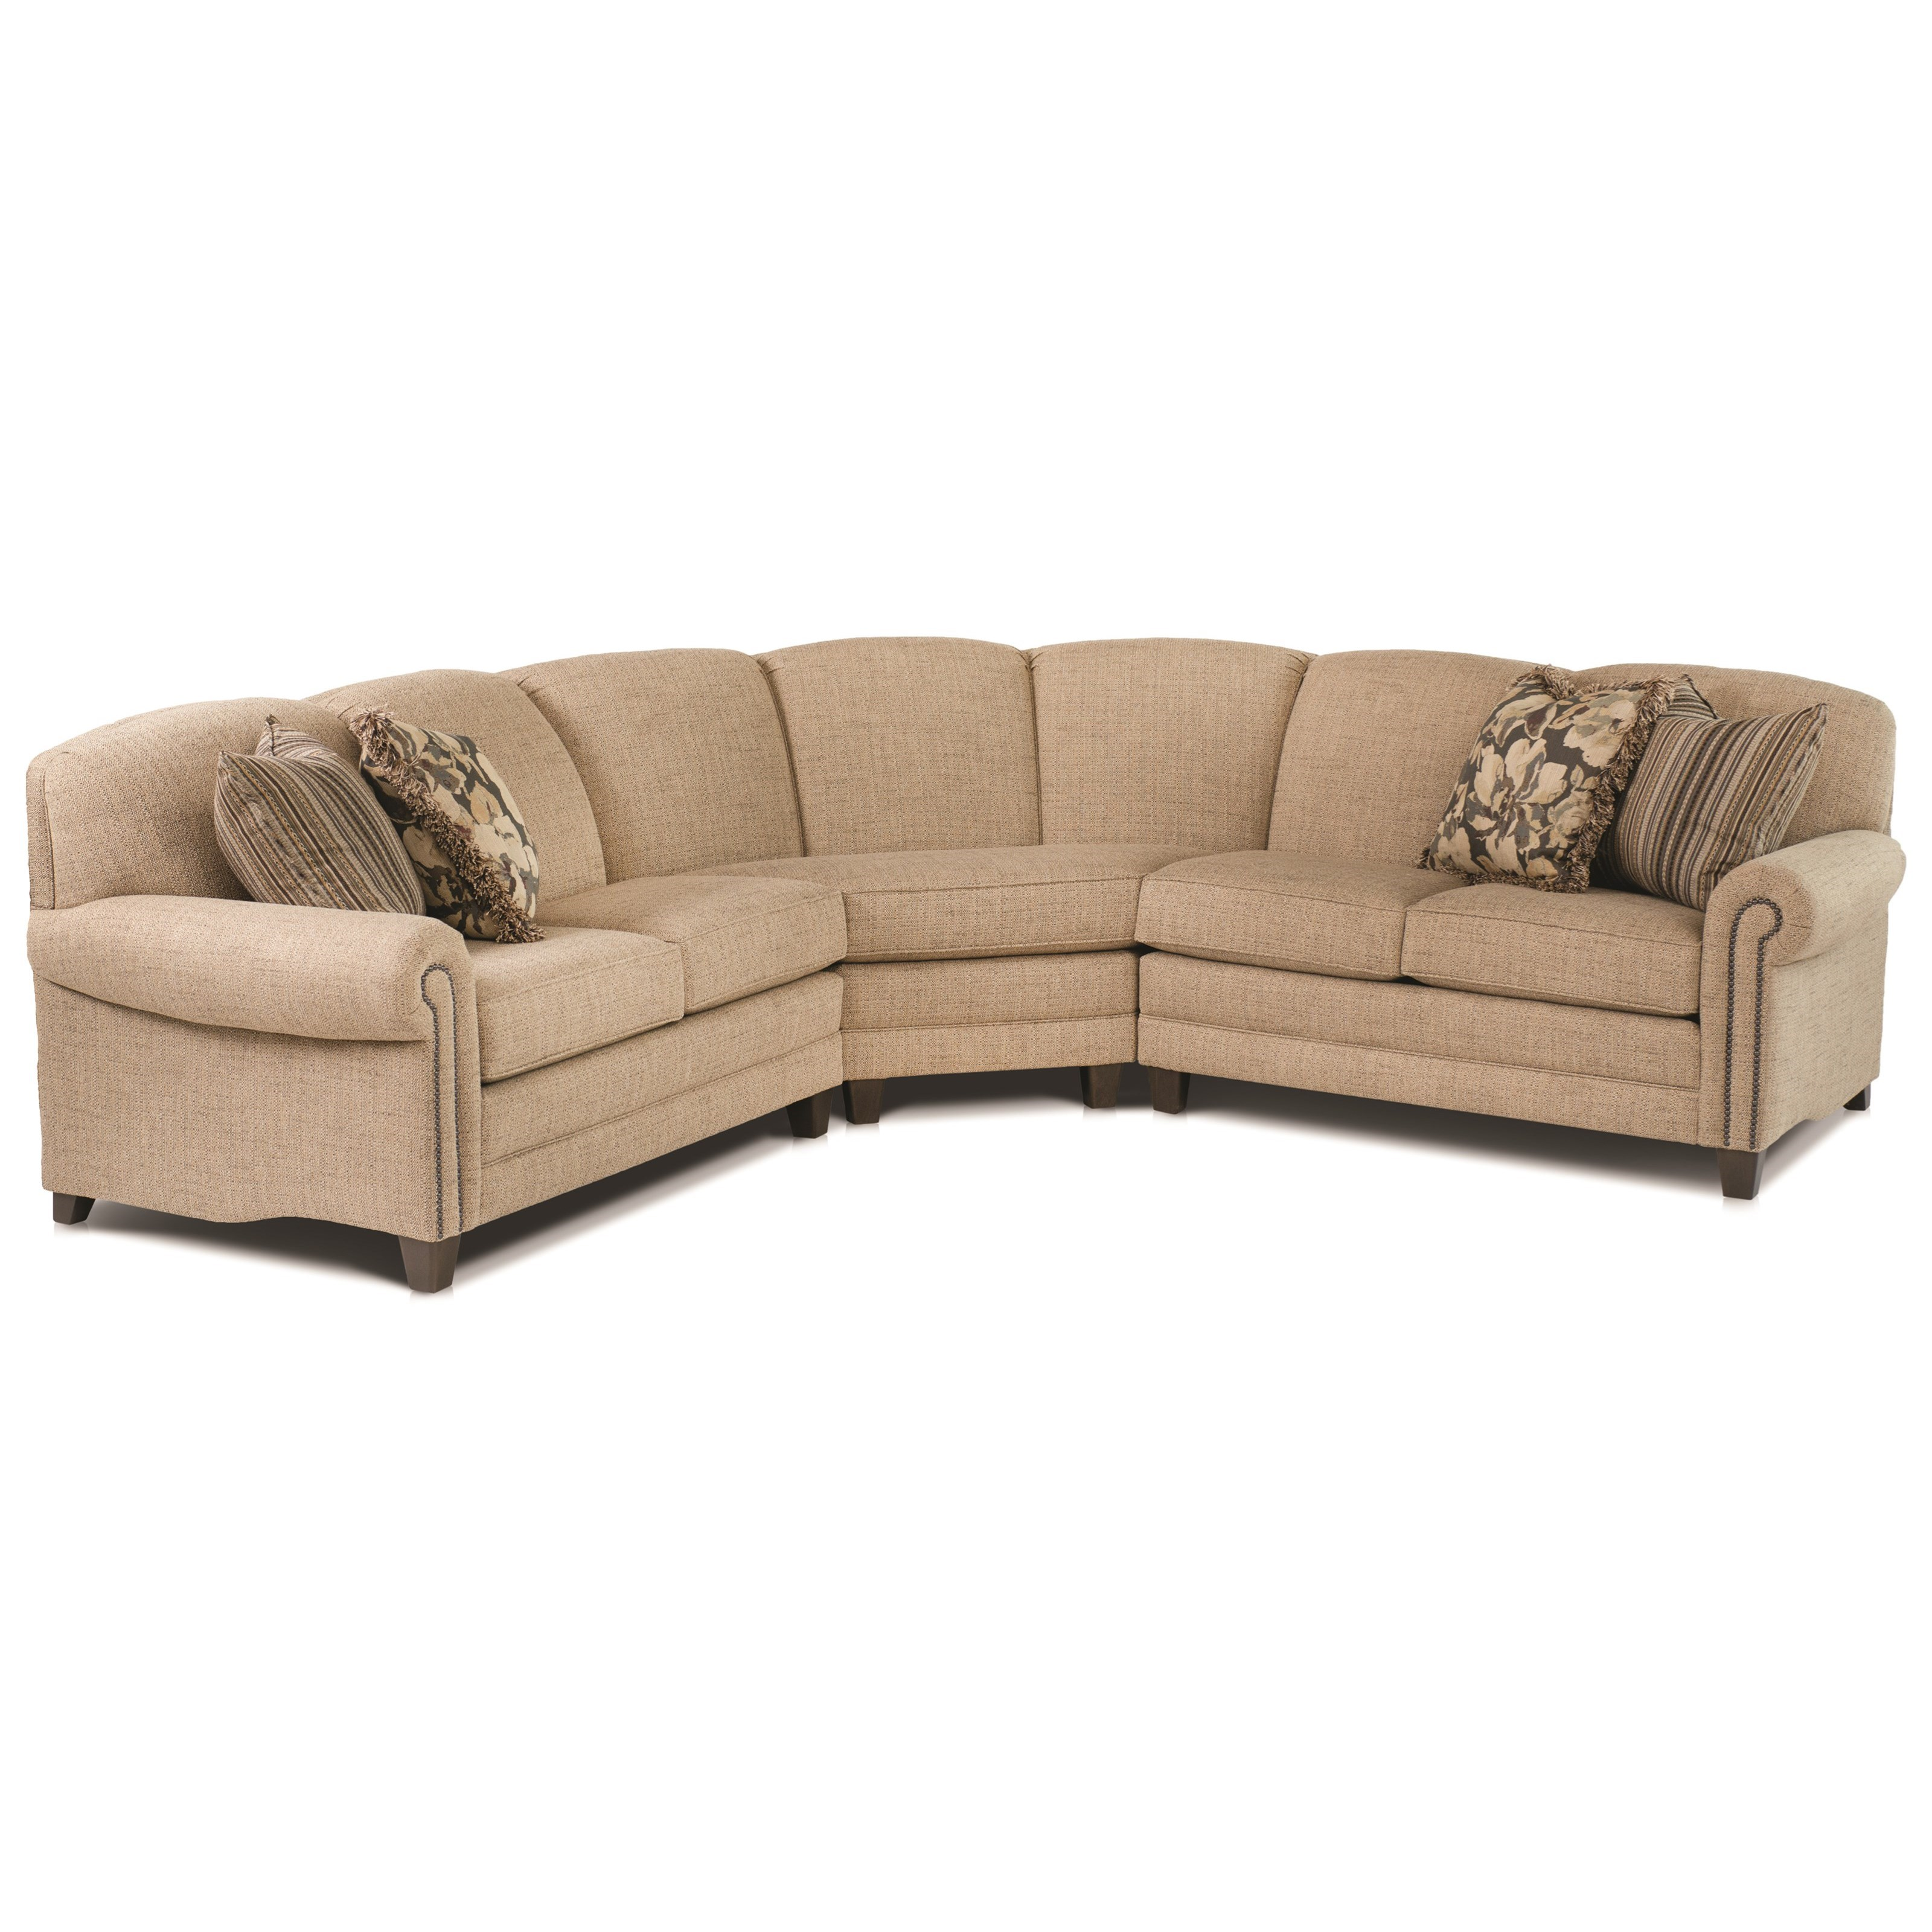 397 Stationary Sectional by Smith Brothers at Johnny Janosik